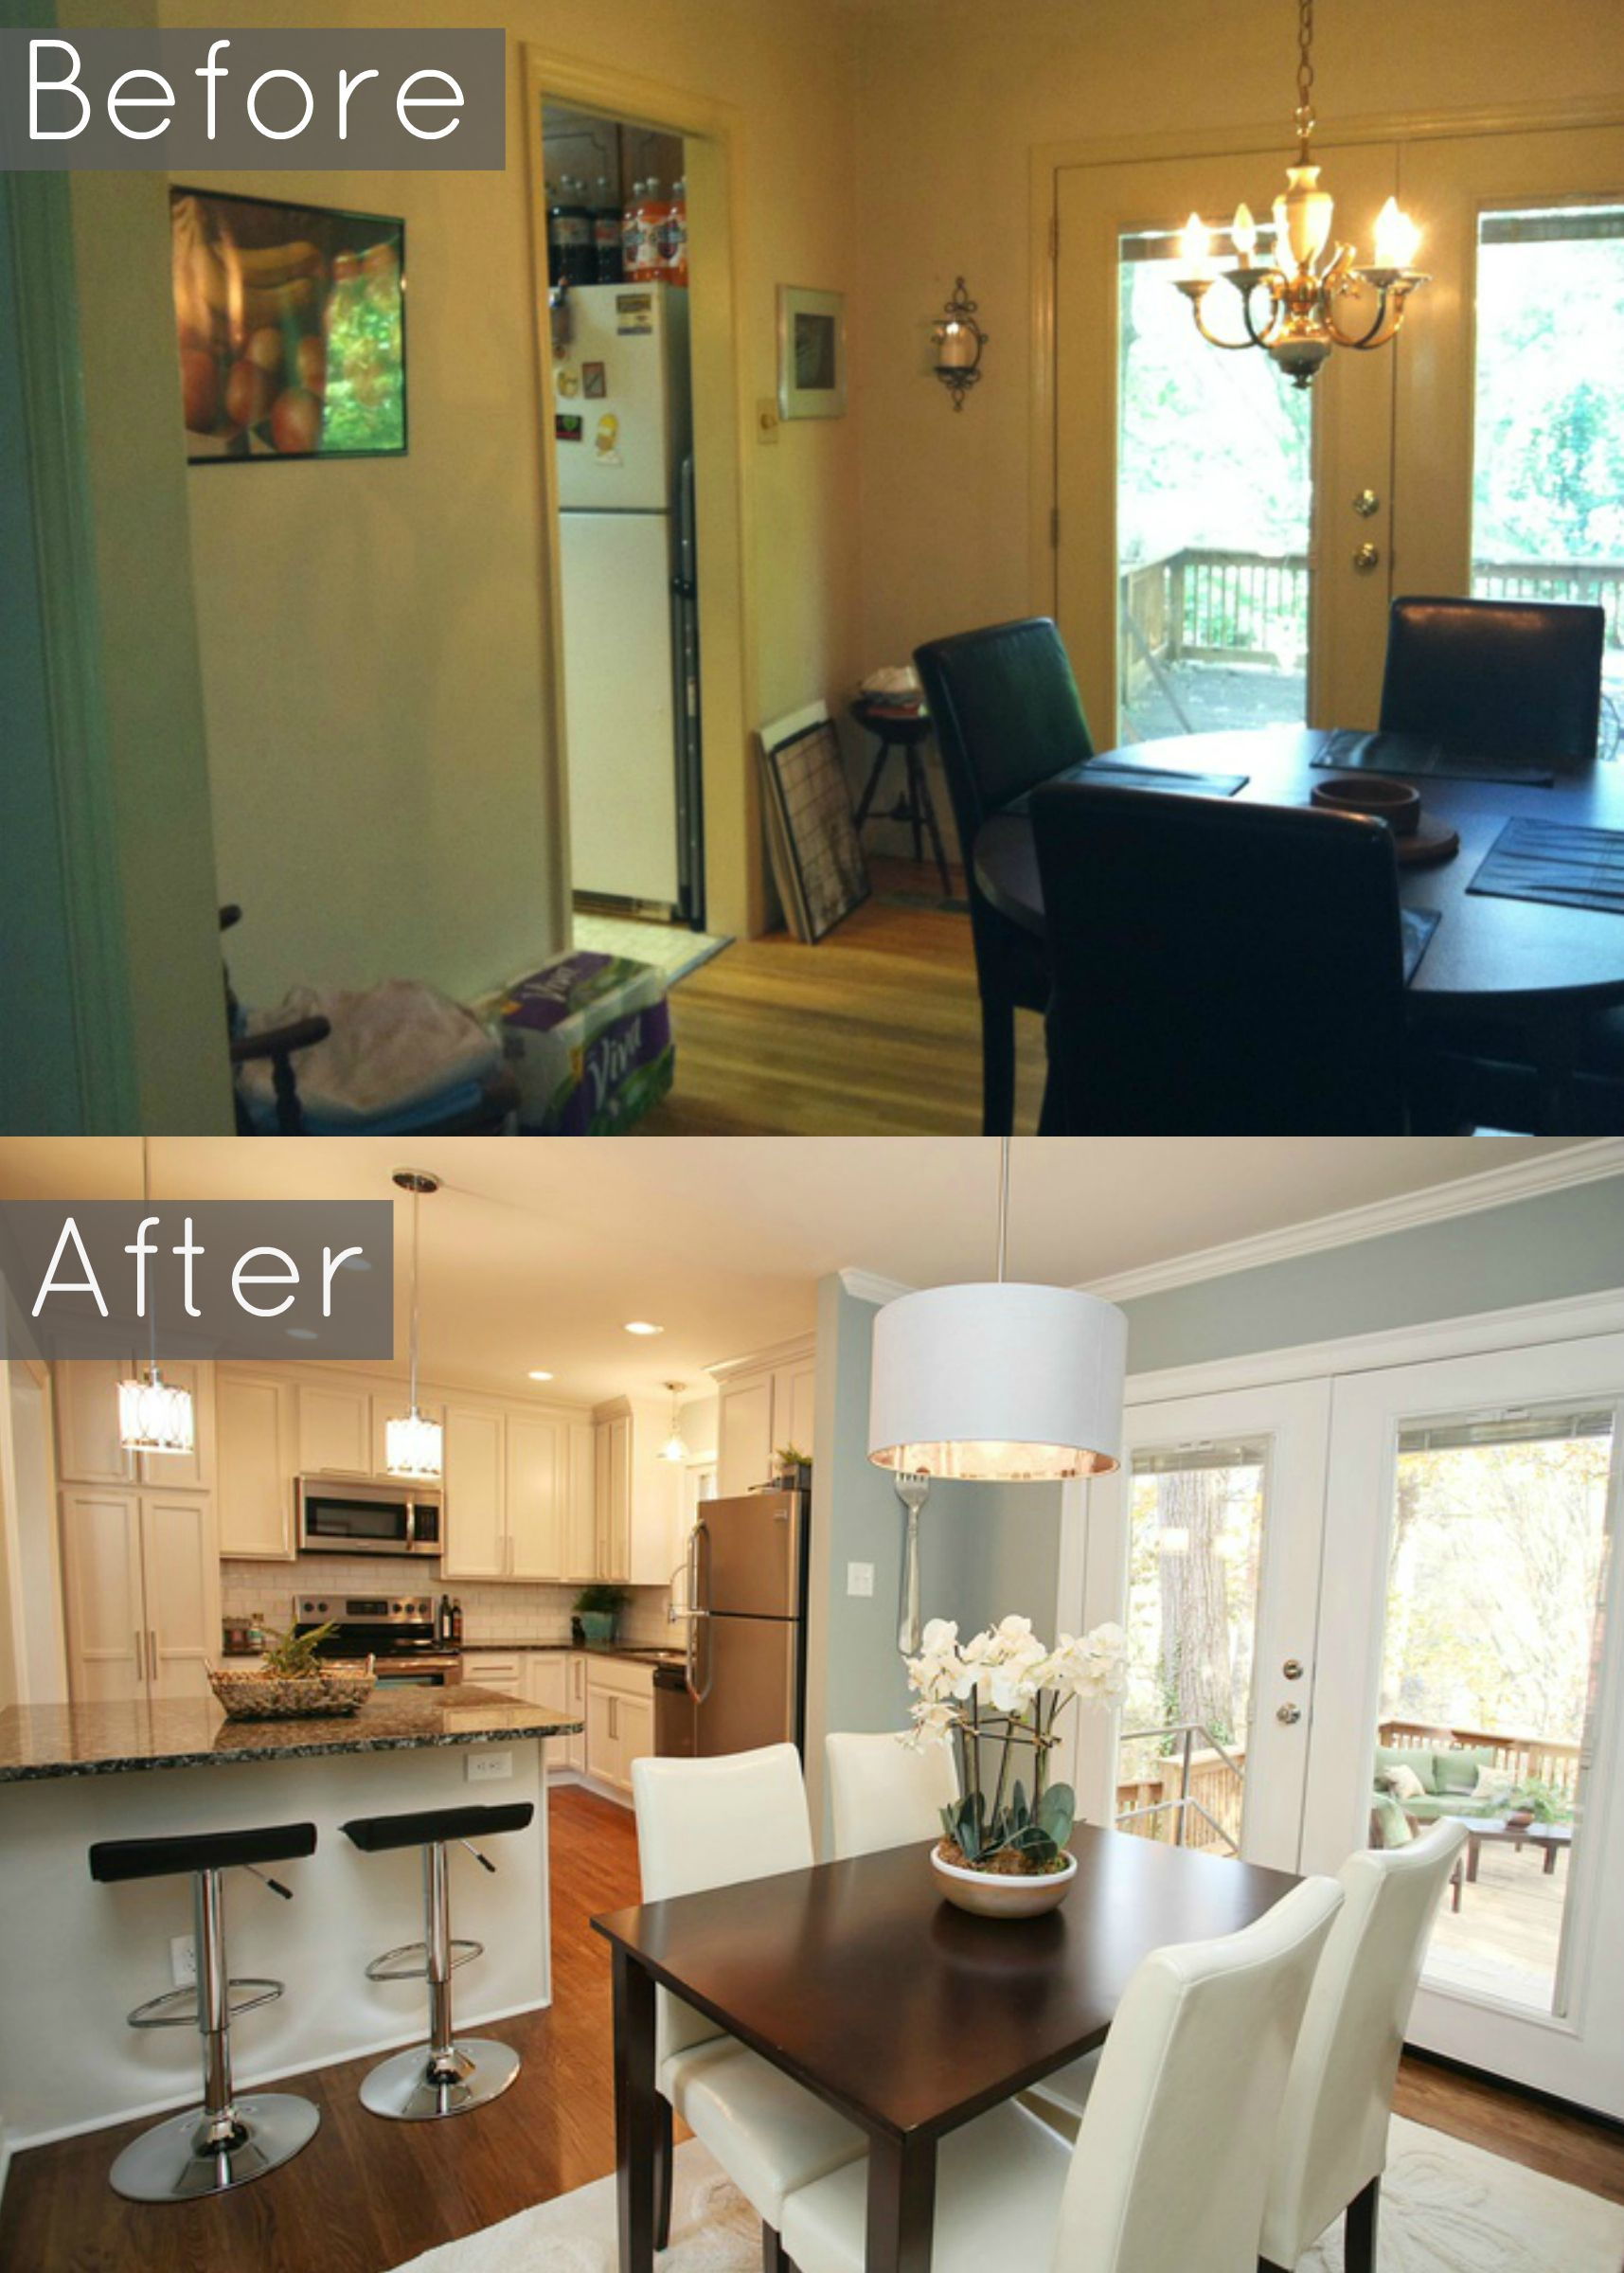 20 Small Kitchen Renovations Before And After House Ideas Small